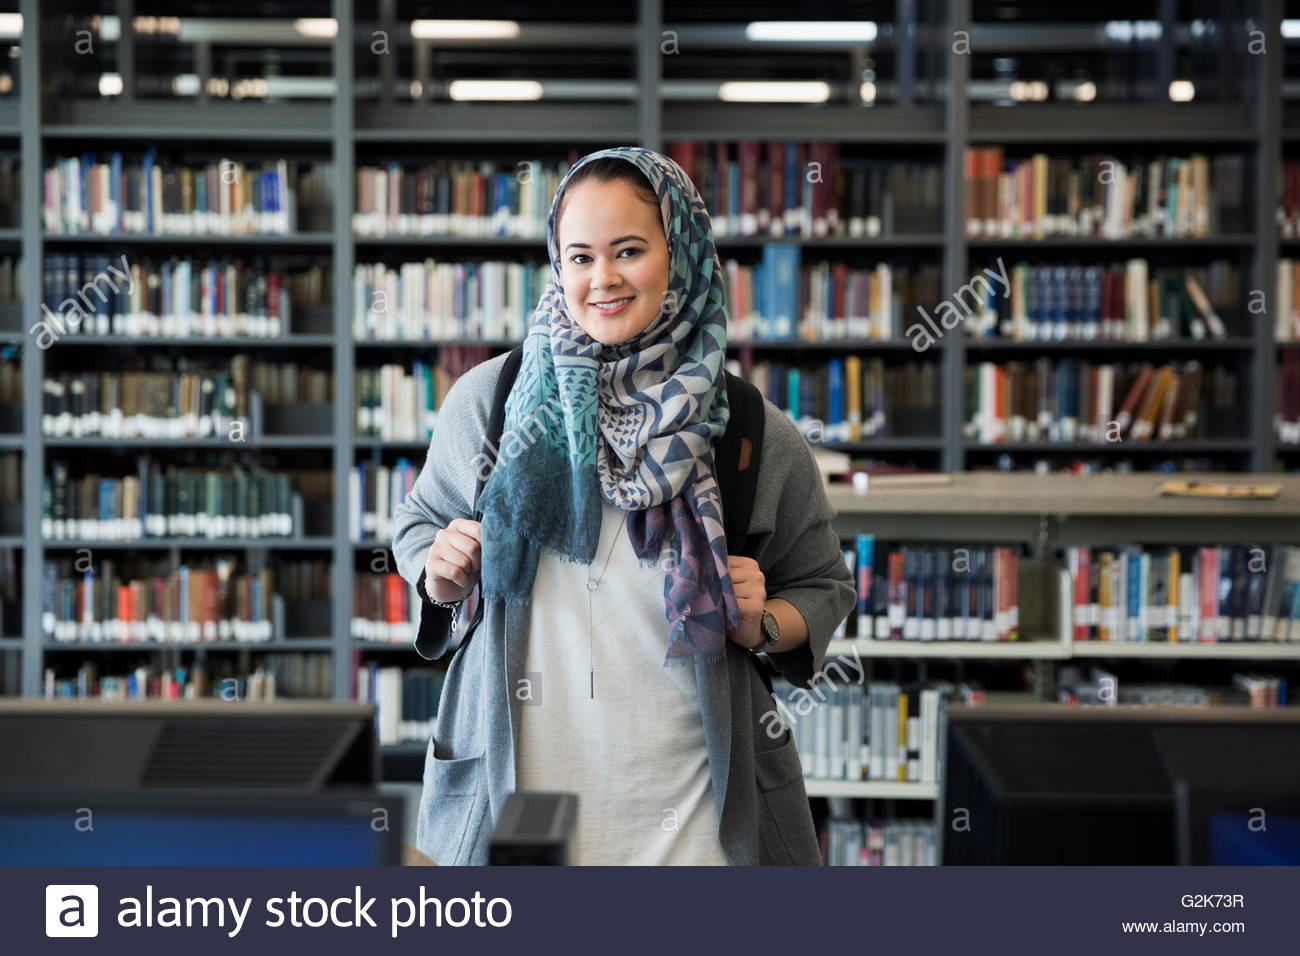 Portrait smiling college student wearing hijab in library - Stock Image